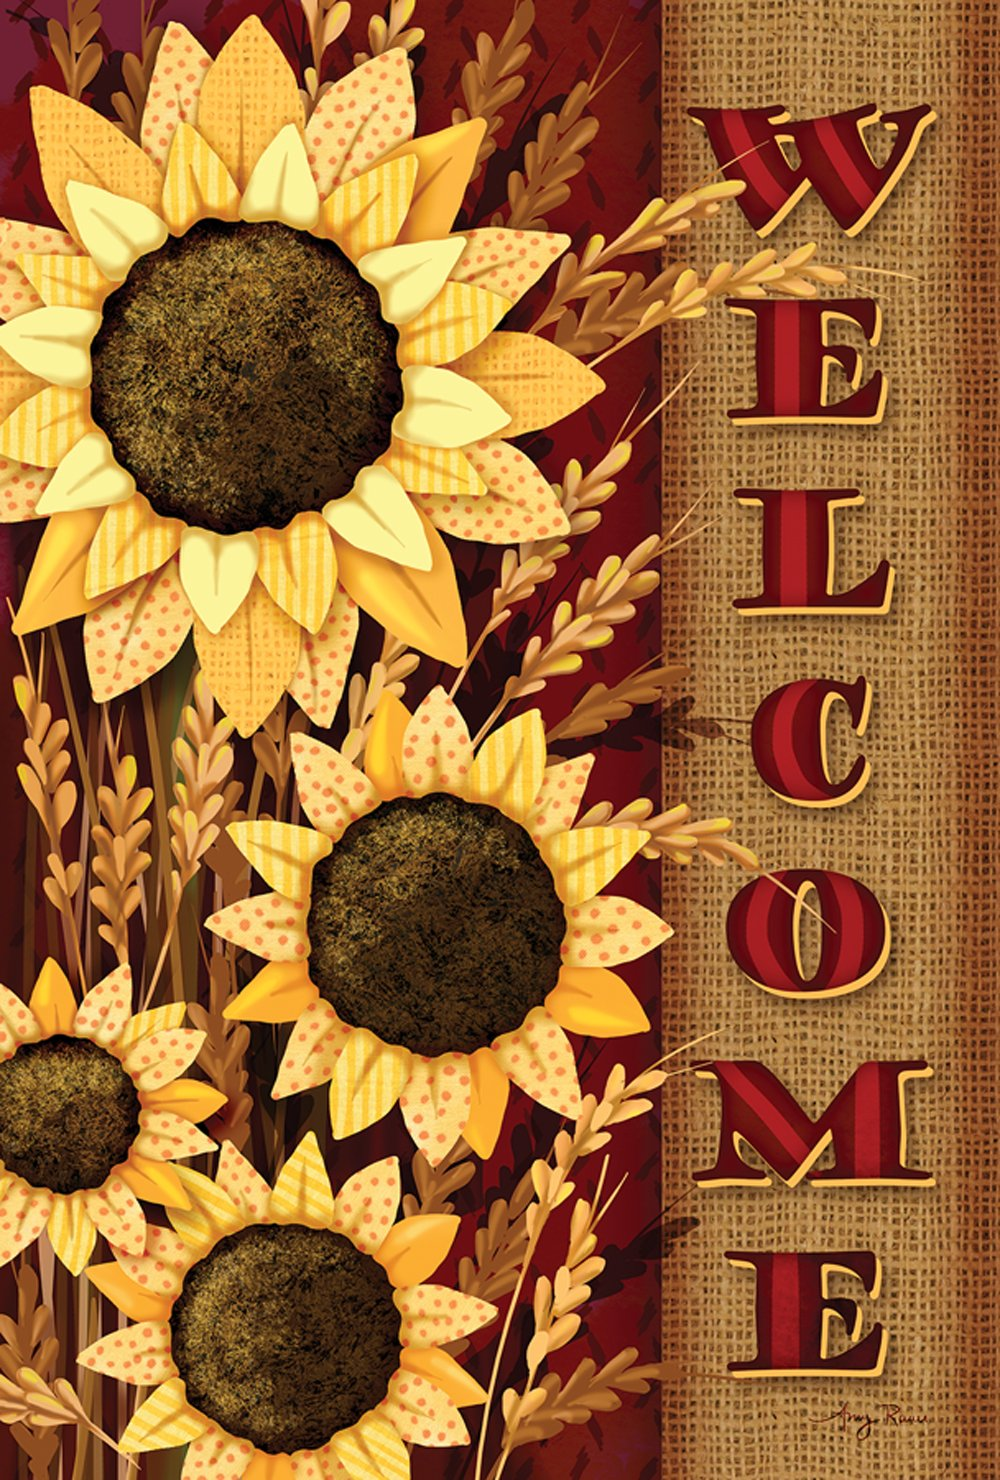 Toland Home Garden Welcome Sunflowers 12.5 x 18 Inch Decorative Fall Autumn Flower Garden Flag